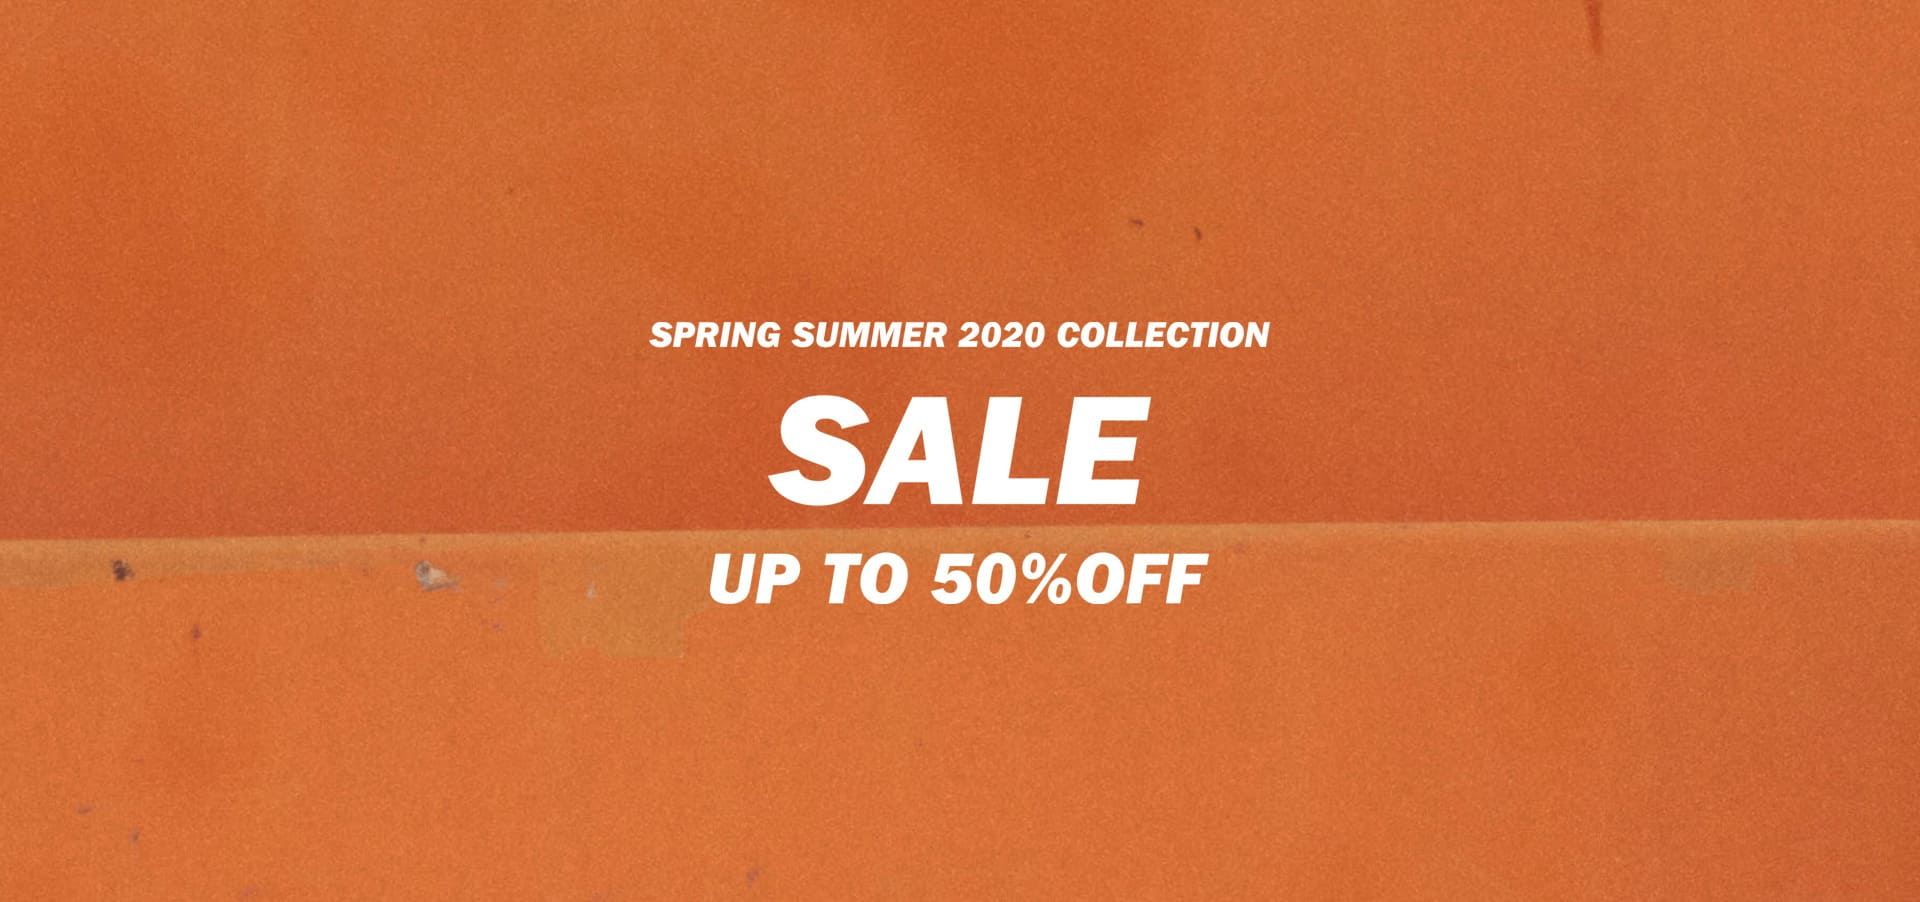 SPRING SUMMER 2020 COLLECTION SALE